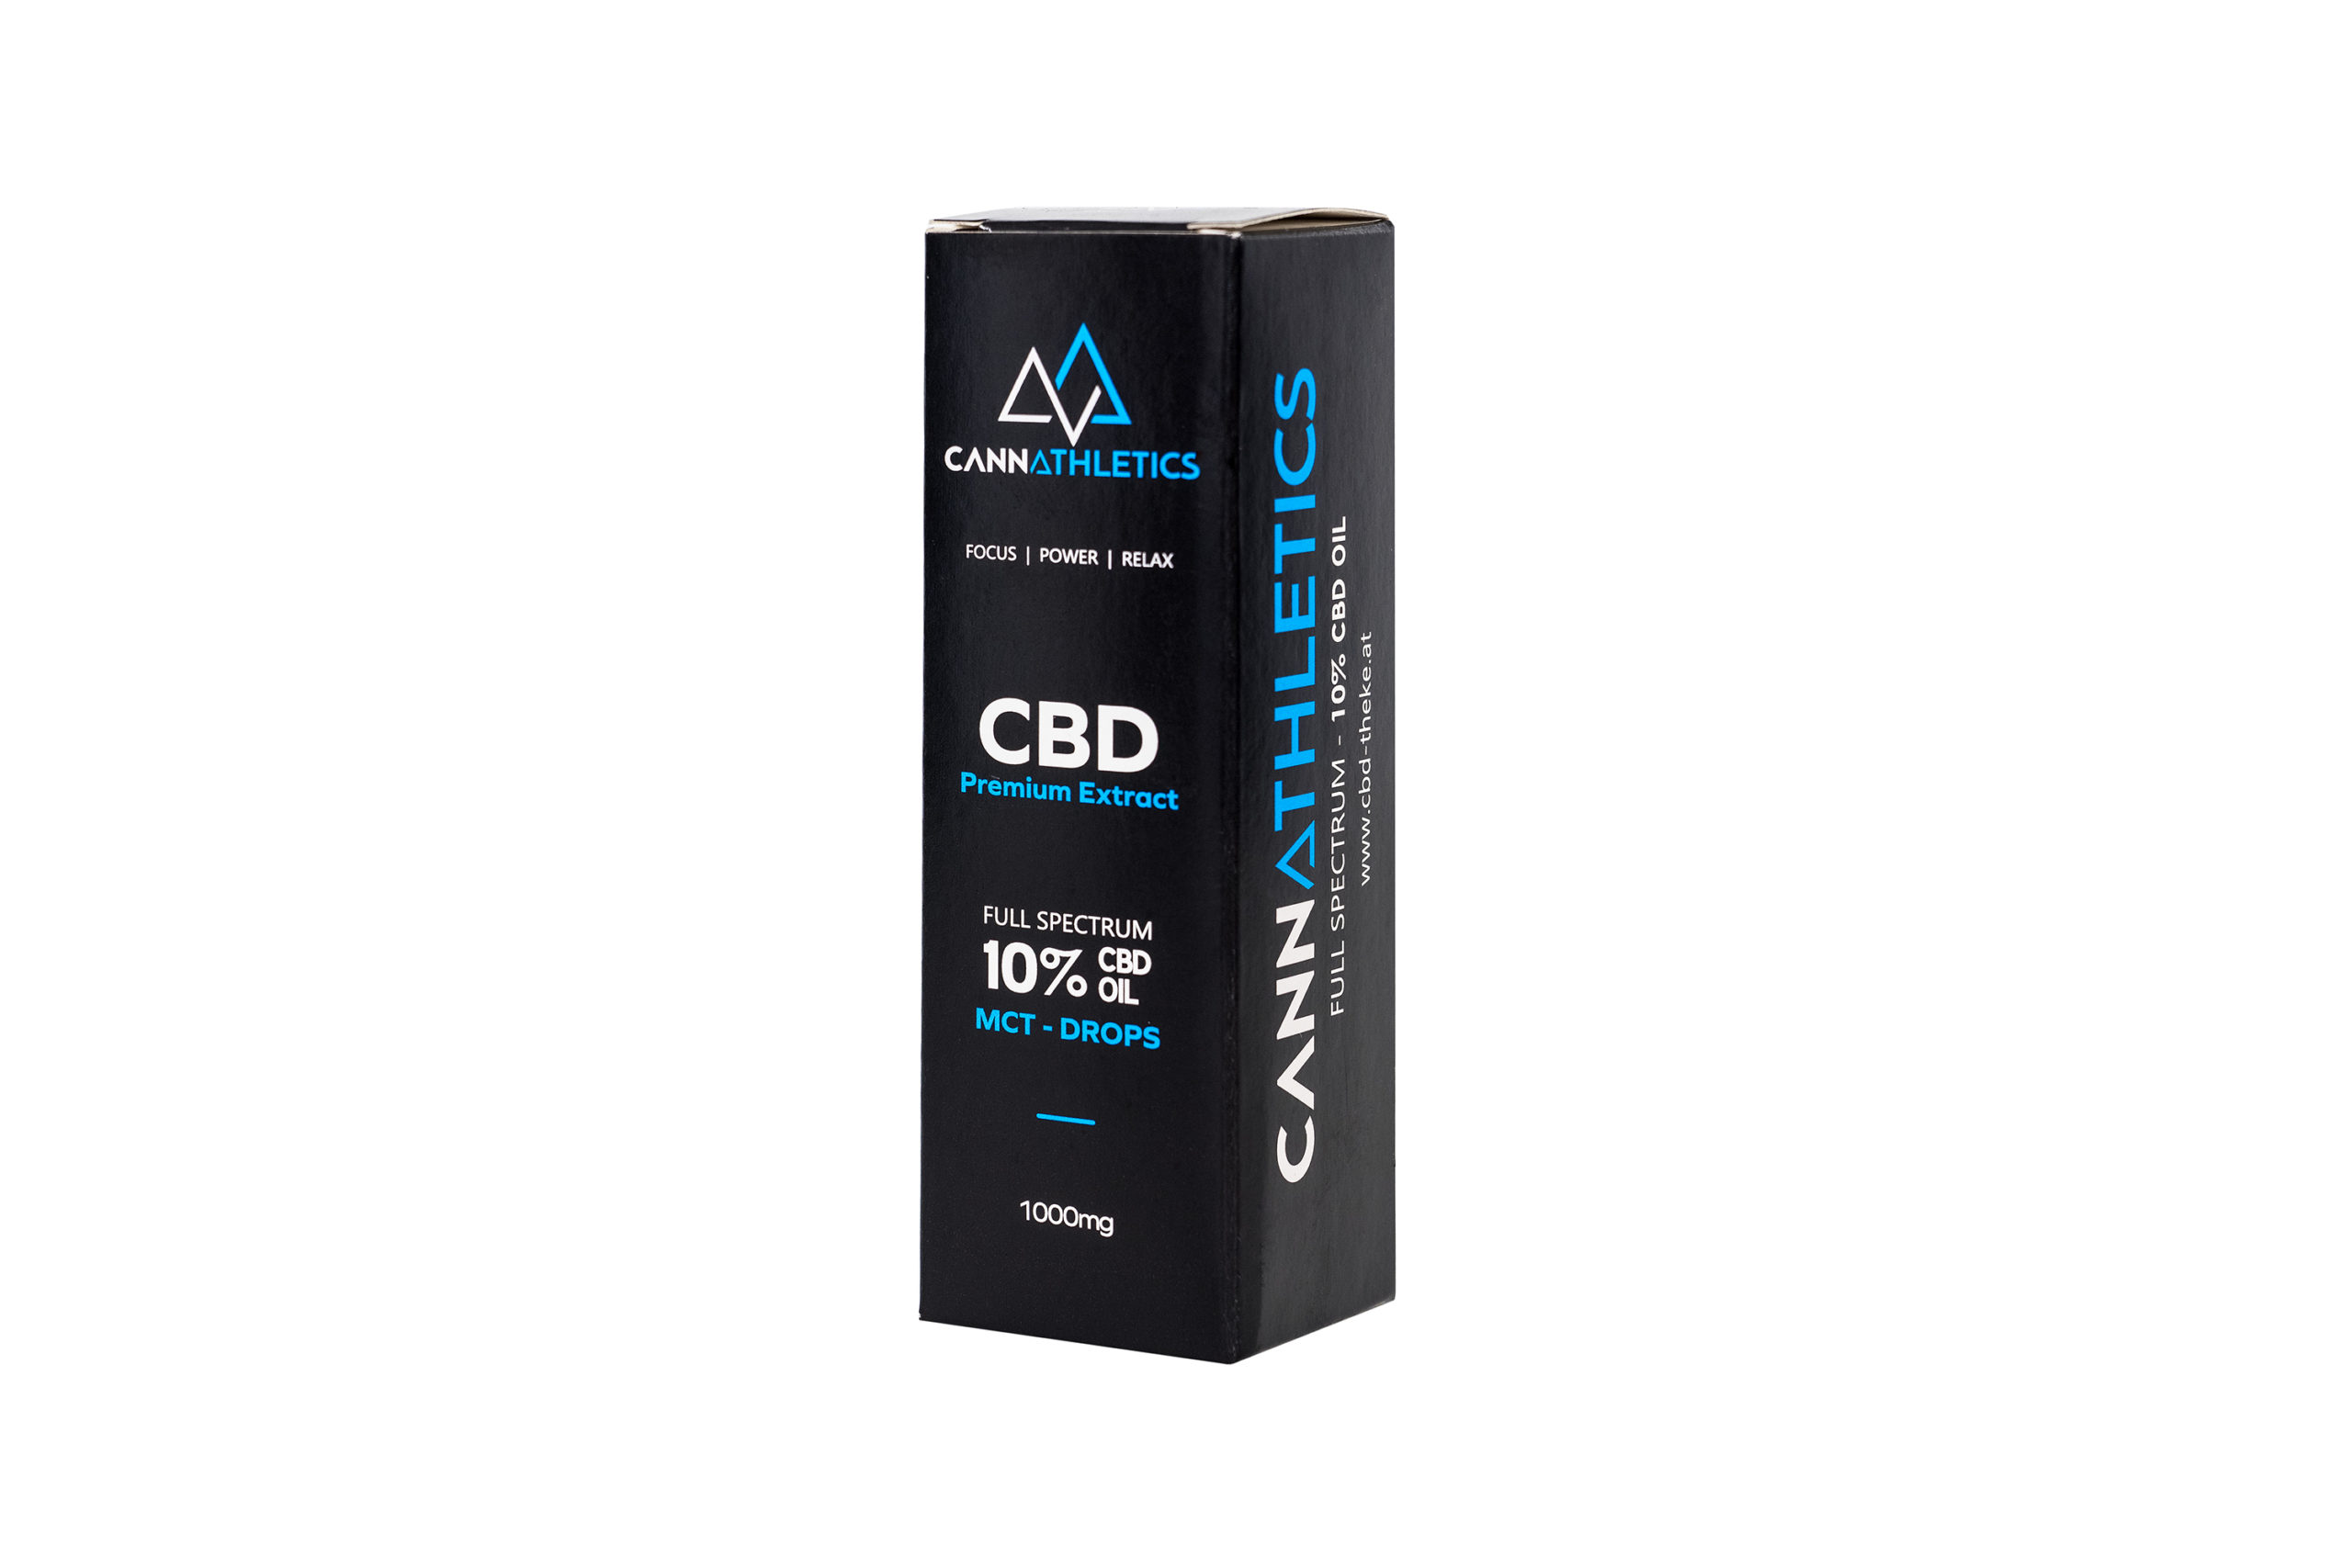 CannAthletics CBD Oil